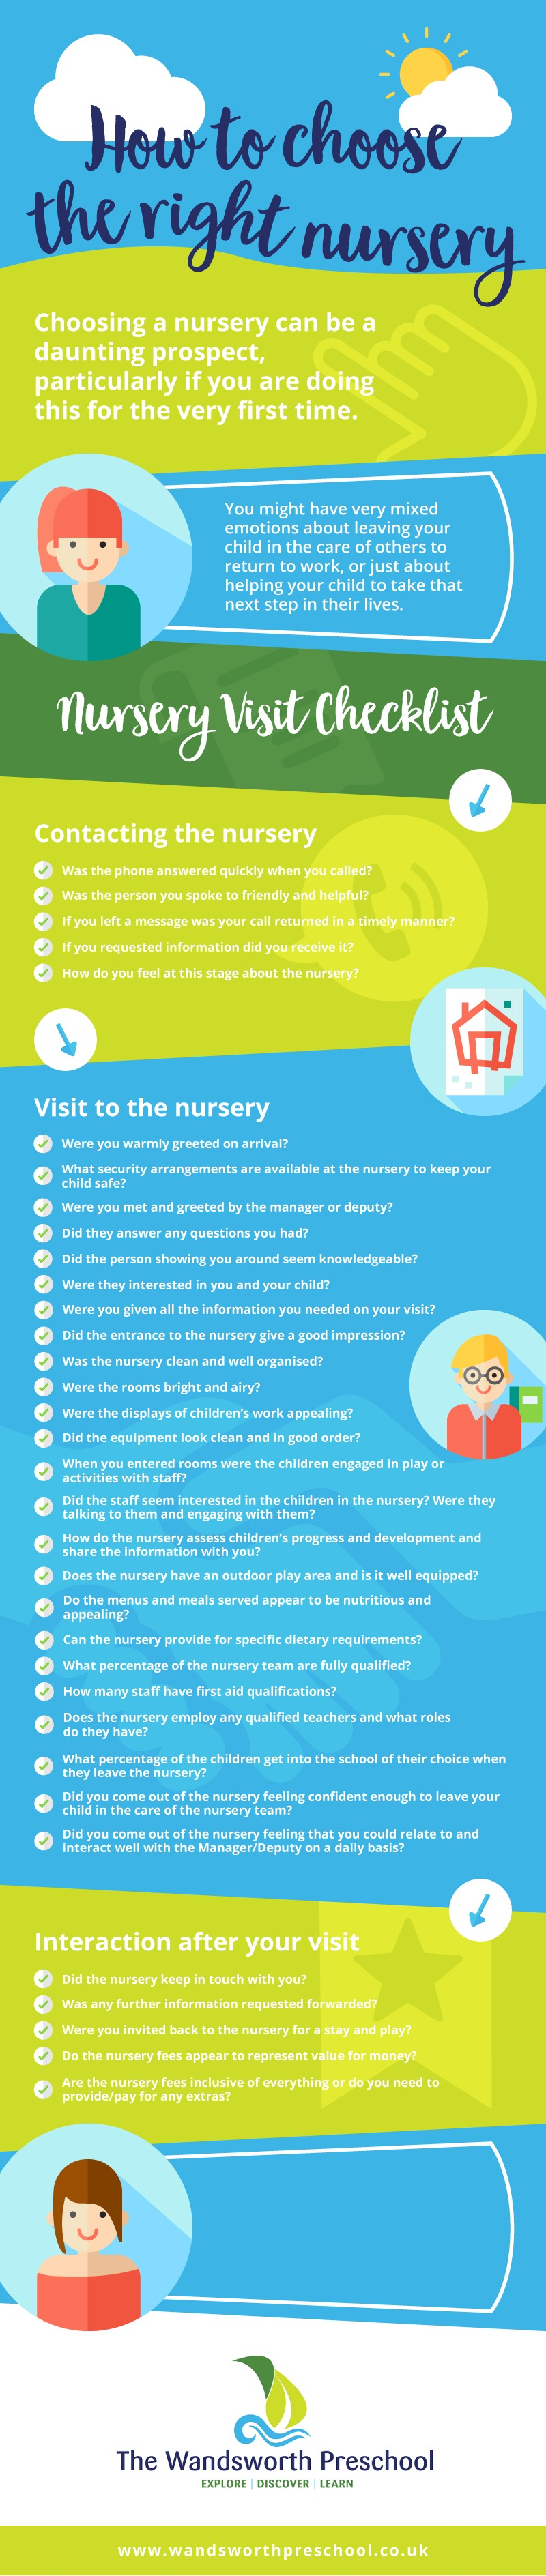 how to choose the right nursery